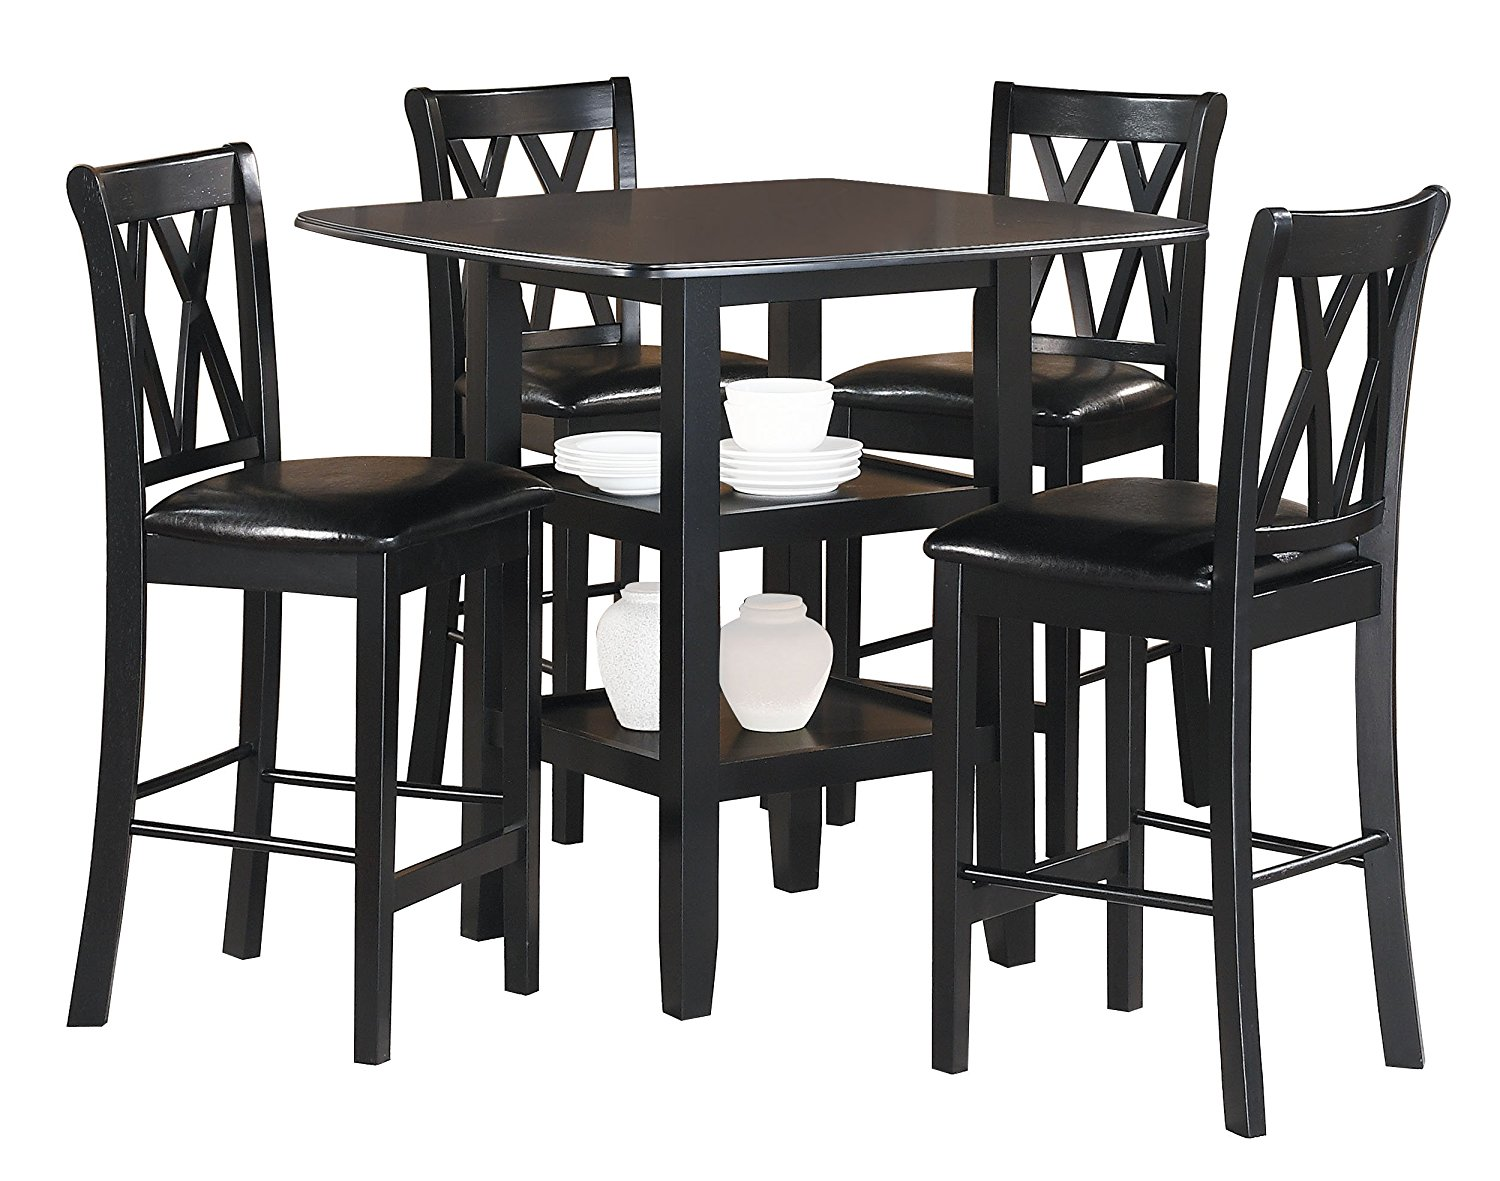 Homelegance Norman 5 Piece Counter Height Table Set In Black 2514bk 36 By Dining Rooms Outlet